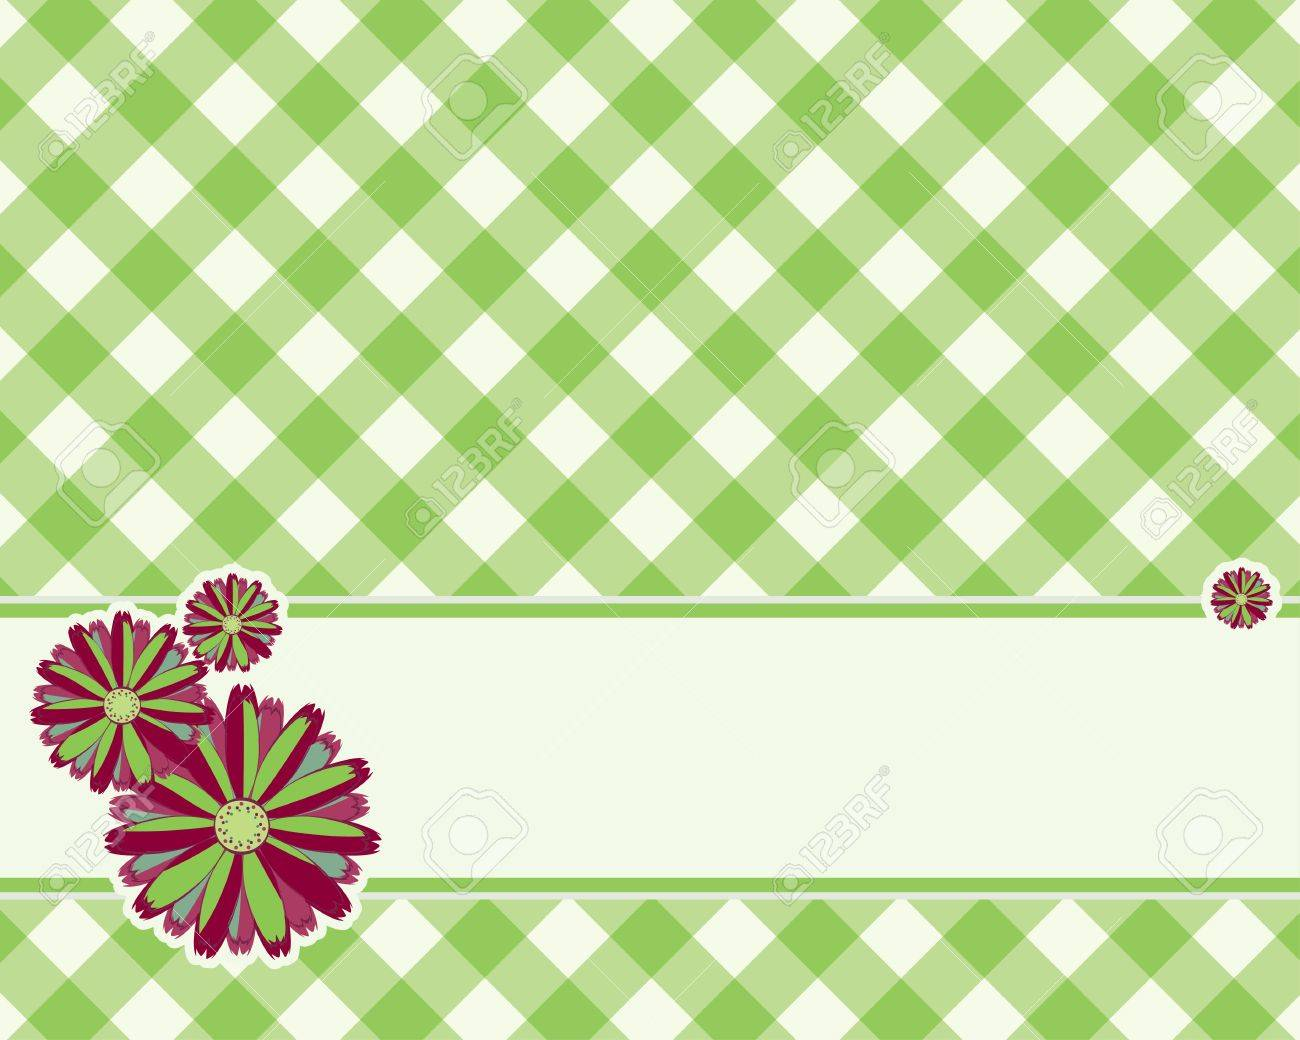 Checkered Background In A Light Green Color Decorated With Flower ...